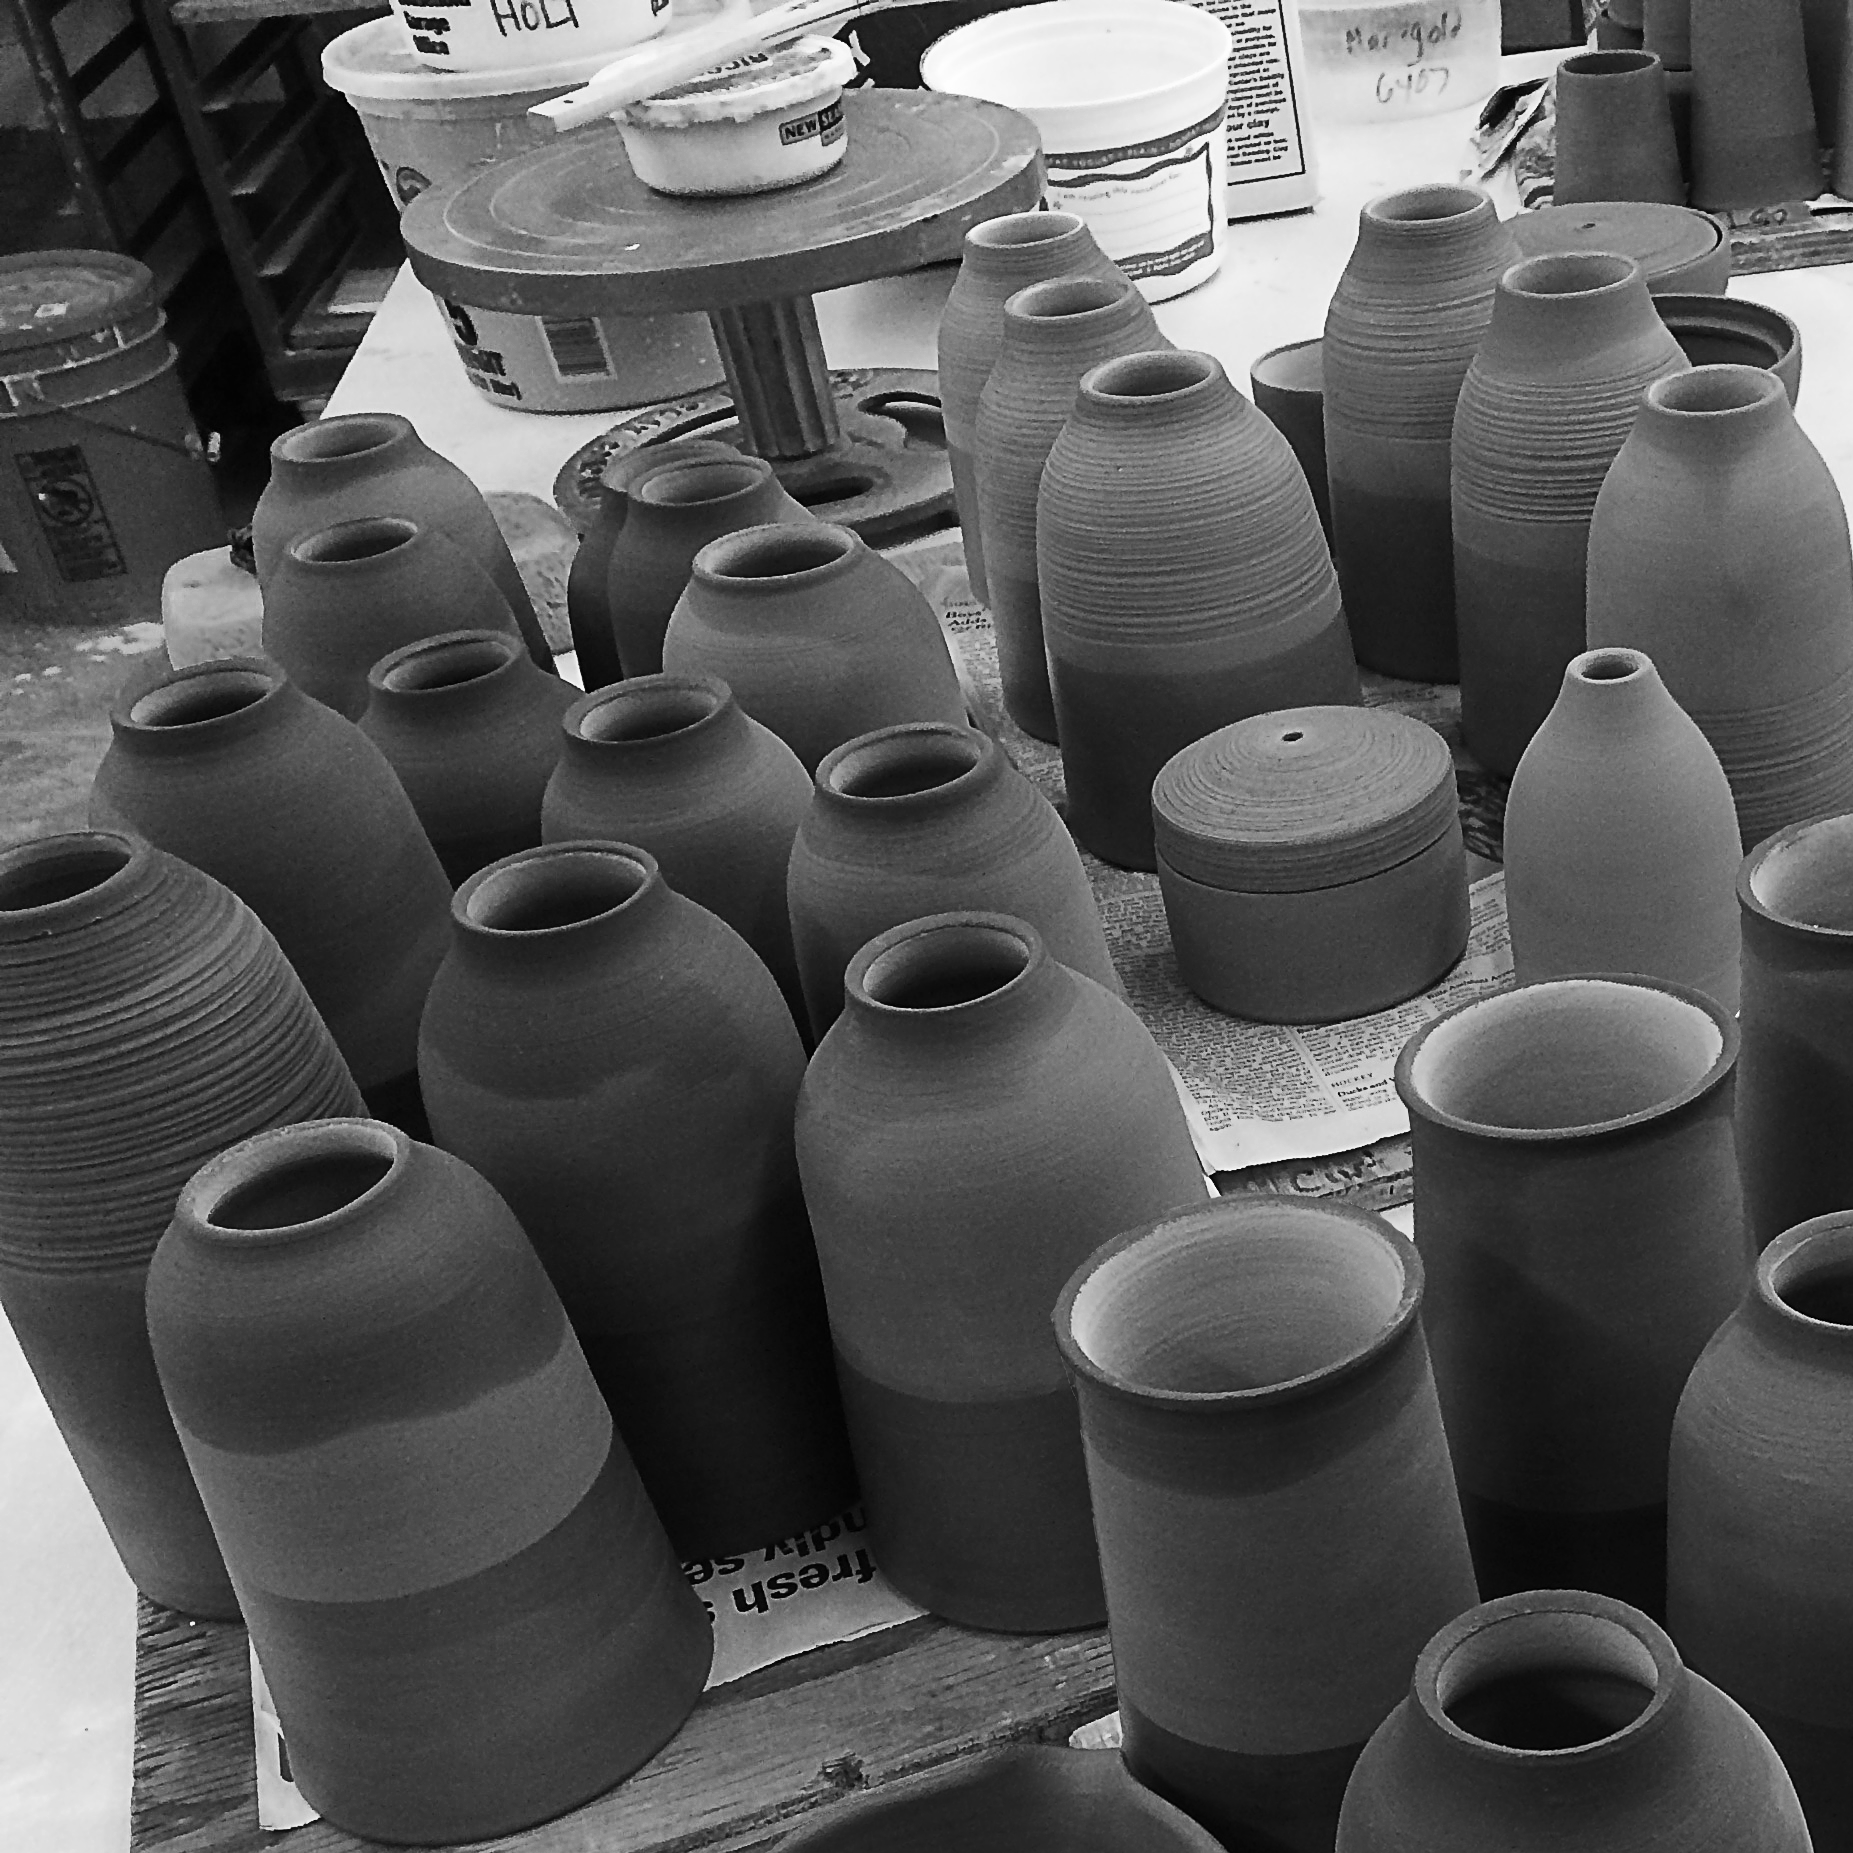 Pieces are fired in the kiln, sanded to smooth the bottom, cleaned and then glazed.